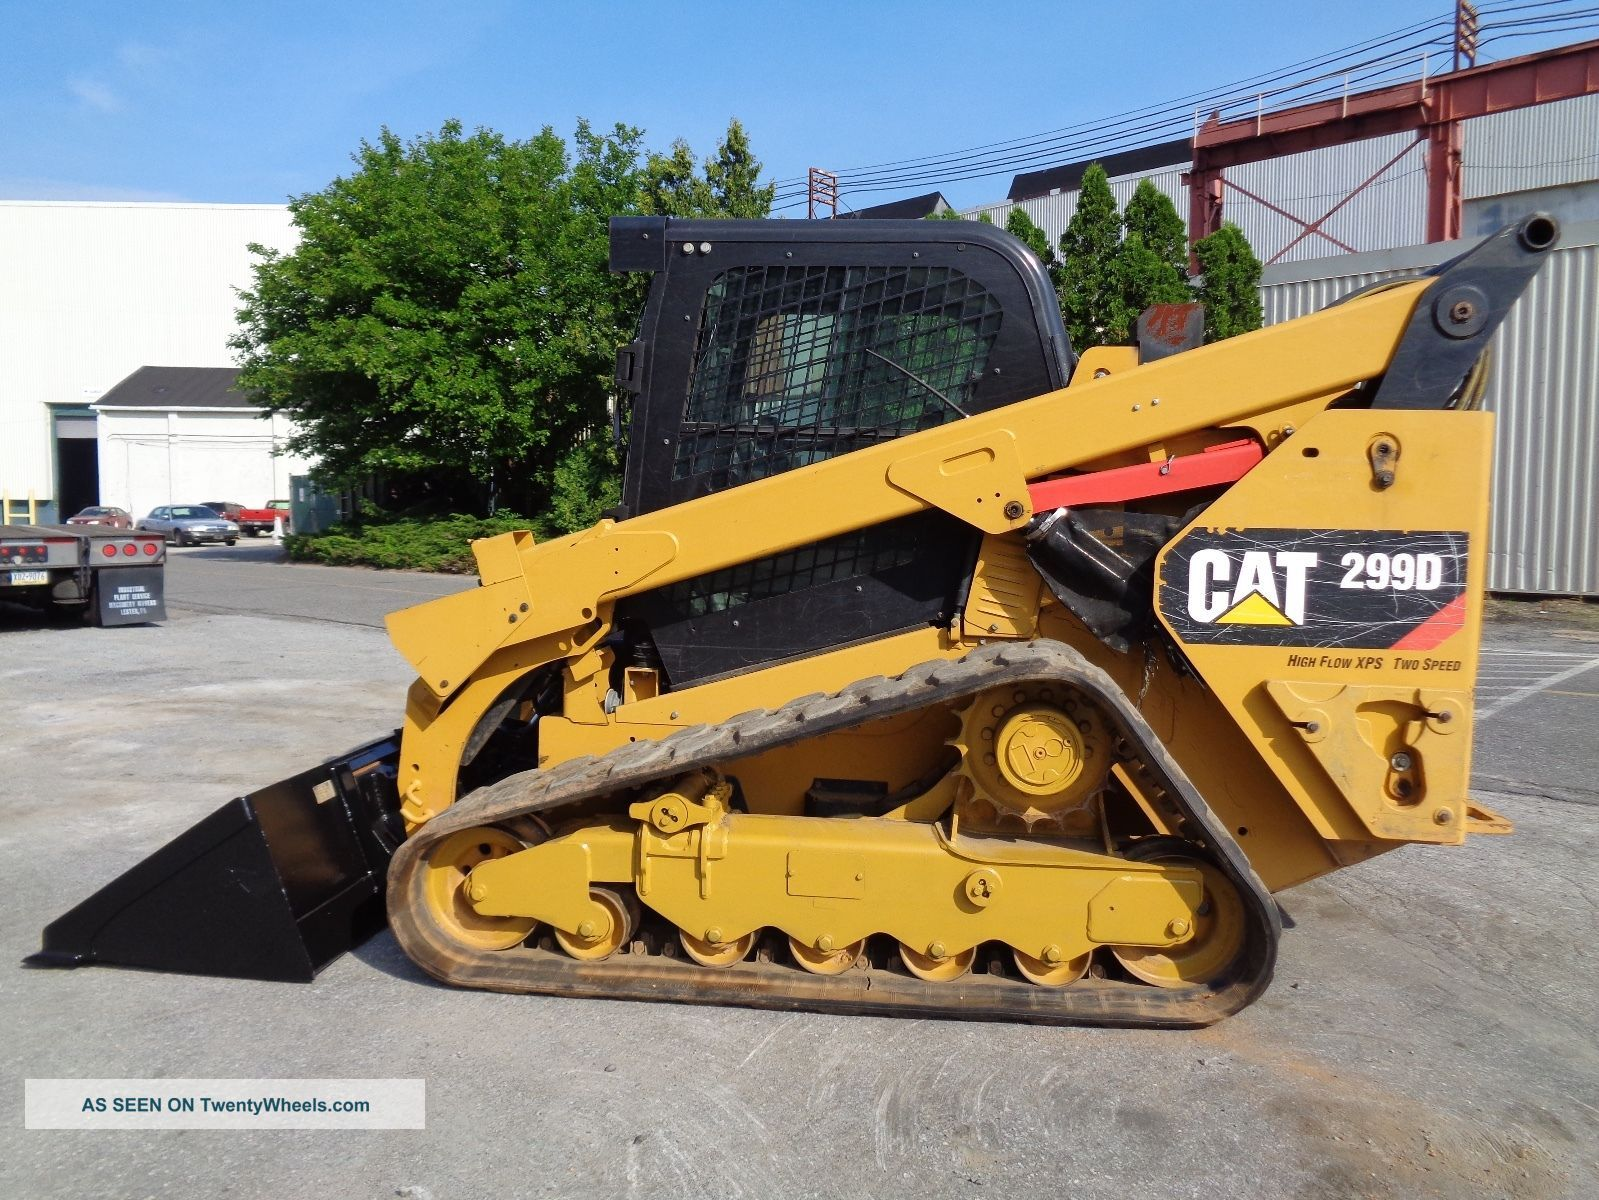 2015 Caterpillar 299d Track Skid Steer Xps High Flow 2 Speed